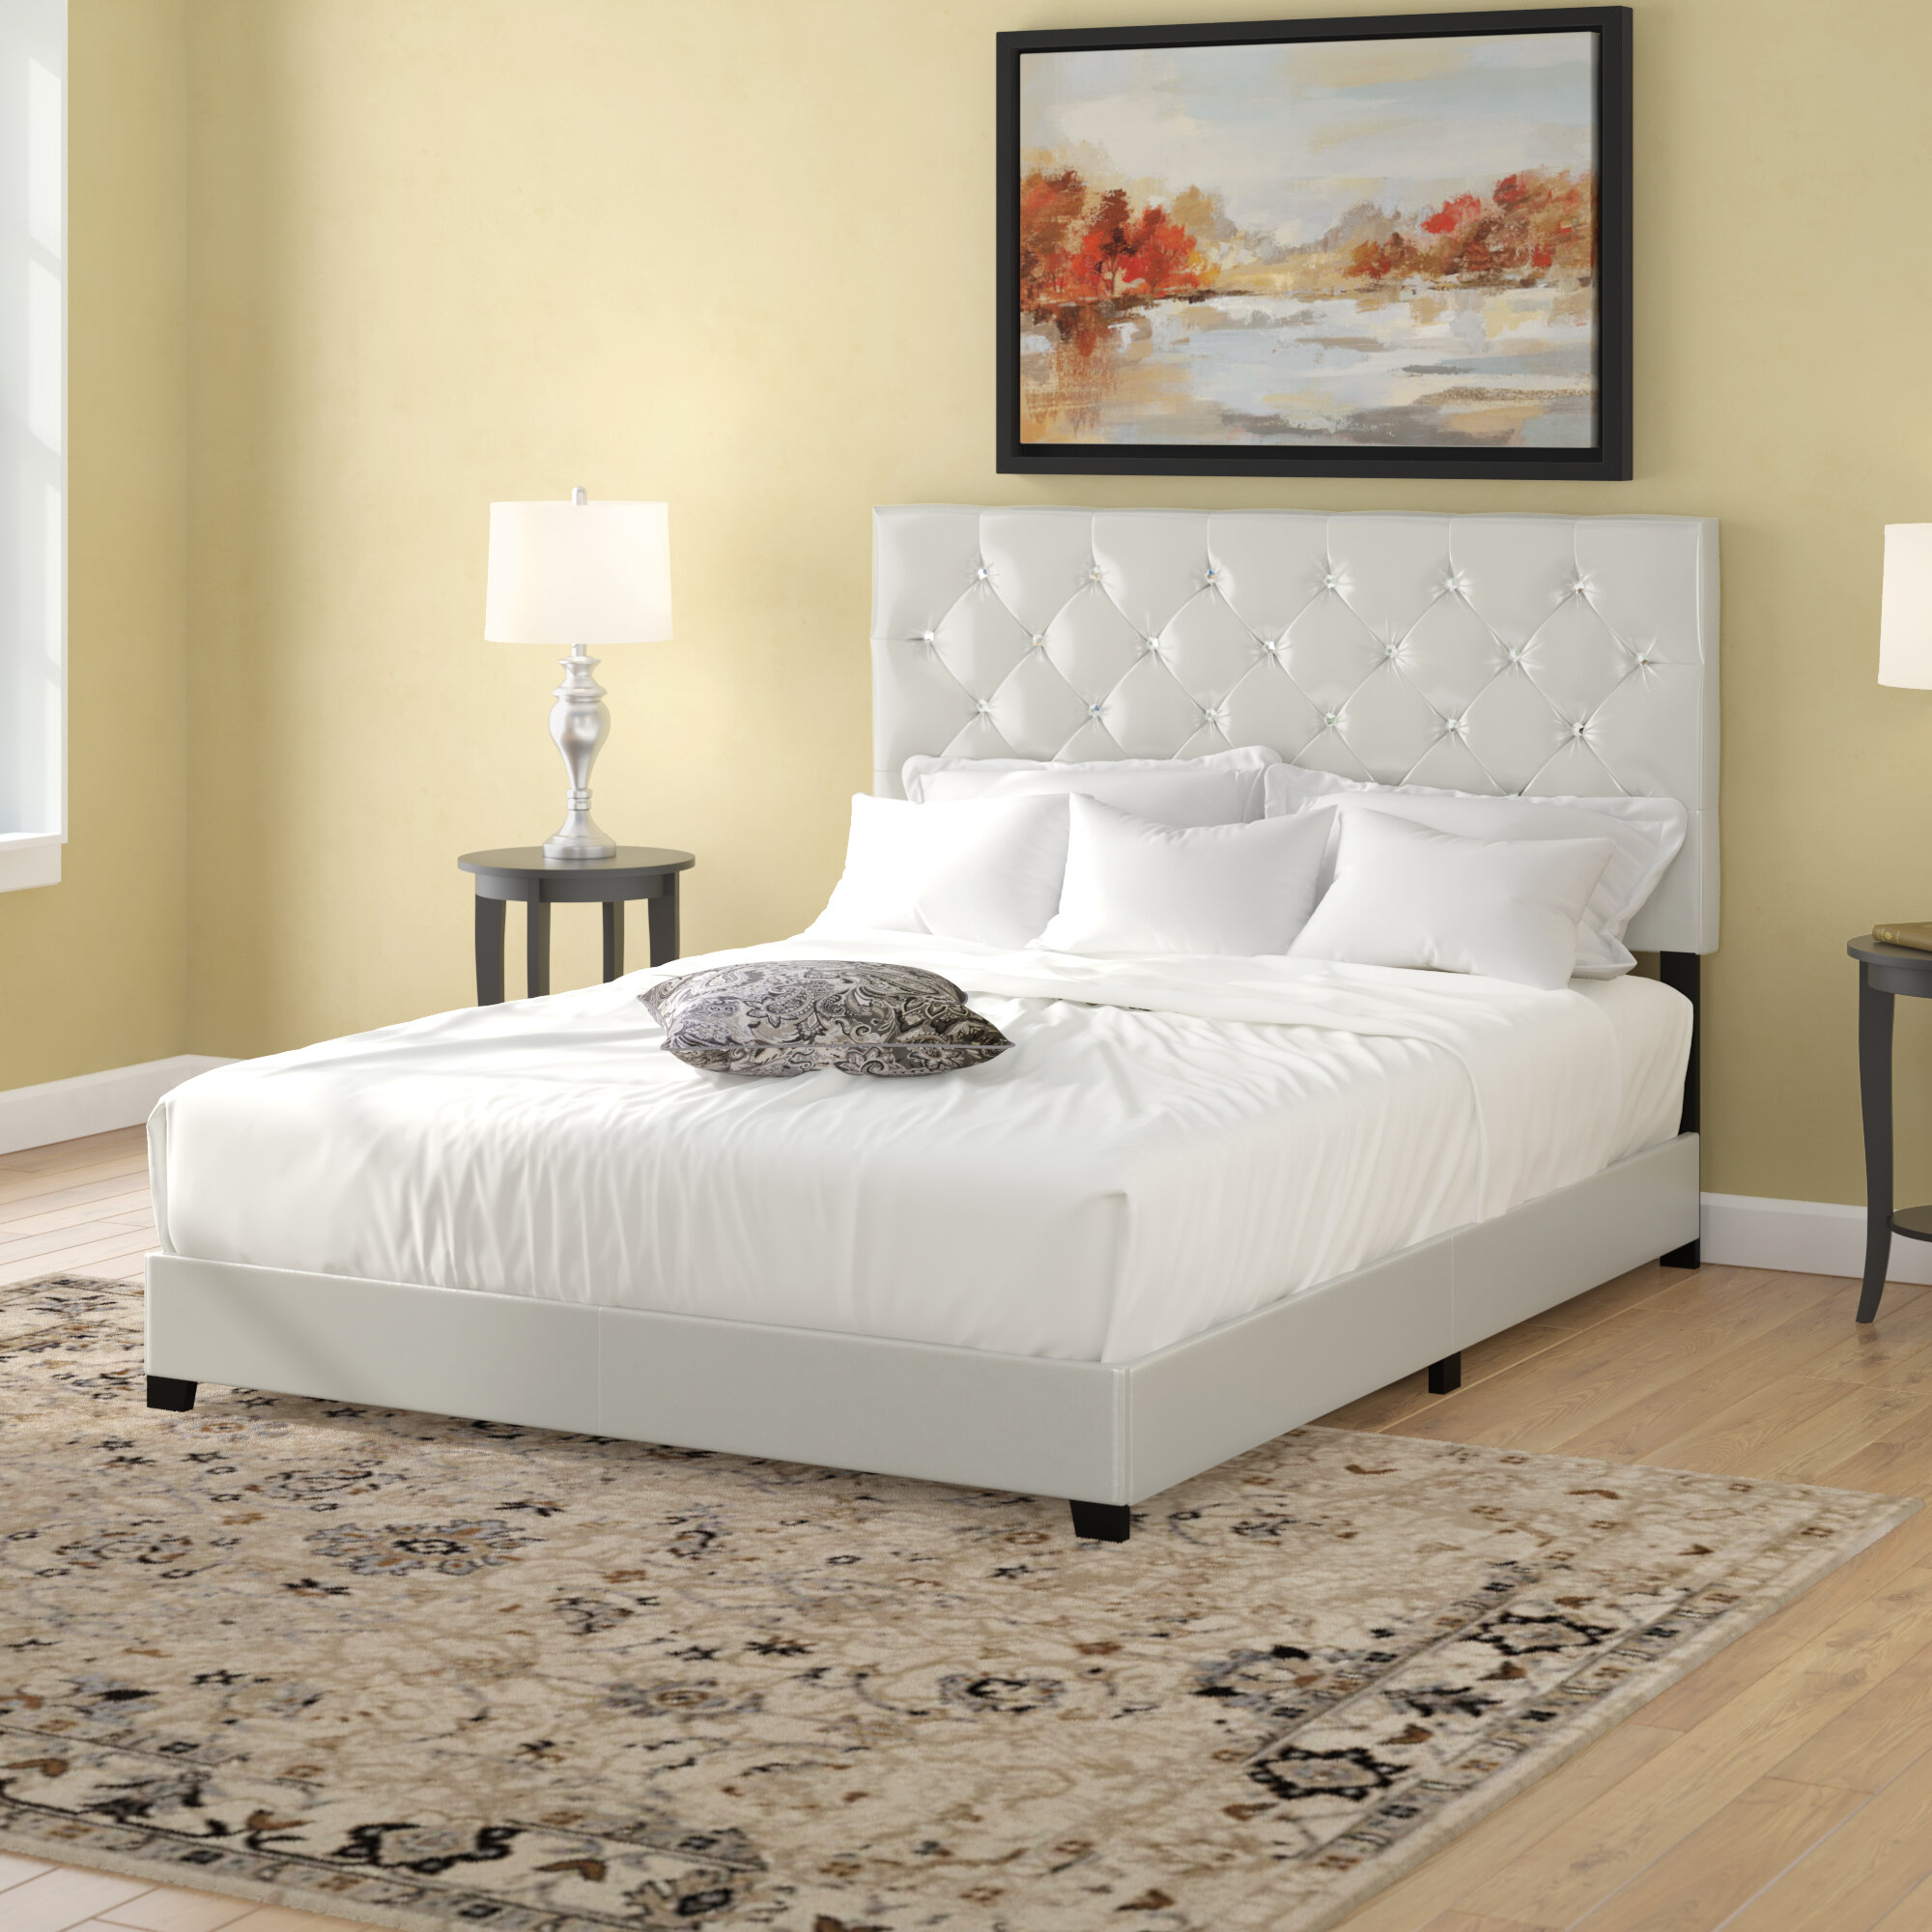 new product 394d3 4d1e9 Ridenhour Diamond Upholstered Standard Bed